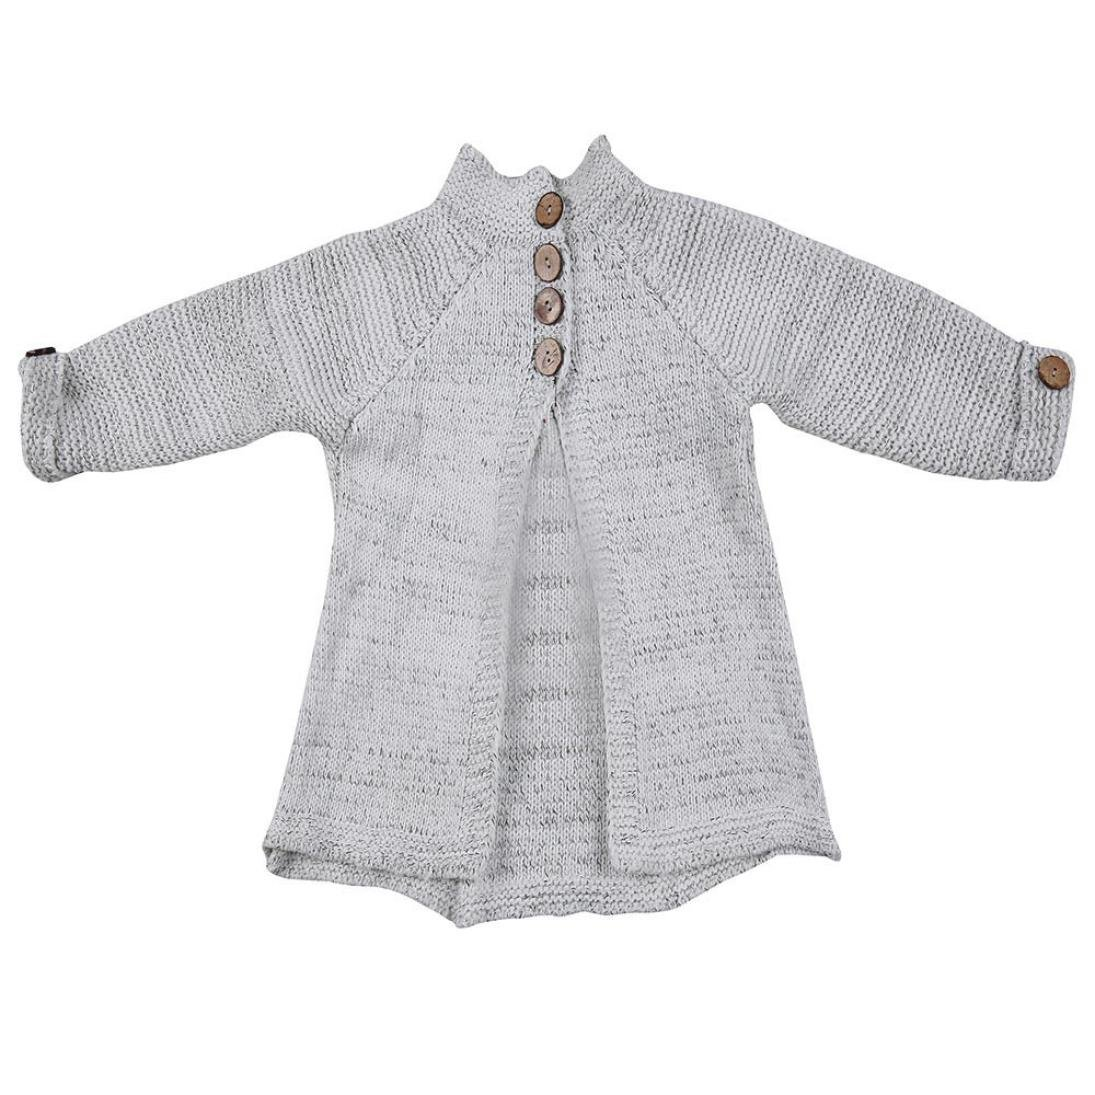 85fd013ac985 Amazon.com  Esharing Girls Solid Color Knitted Sweater Cardigan ...